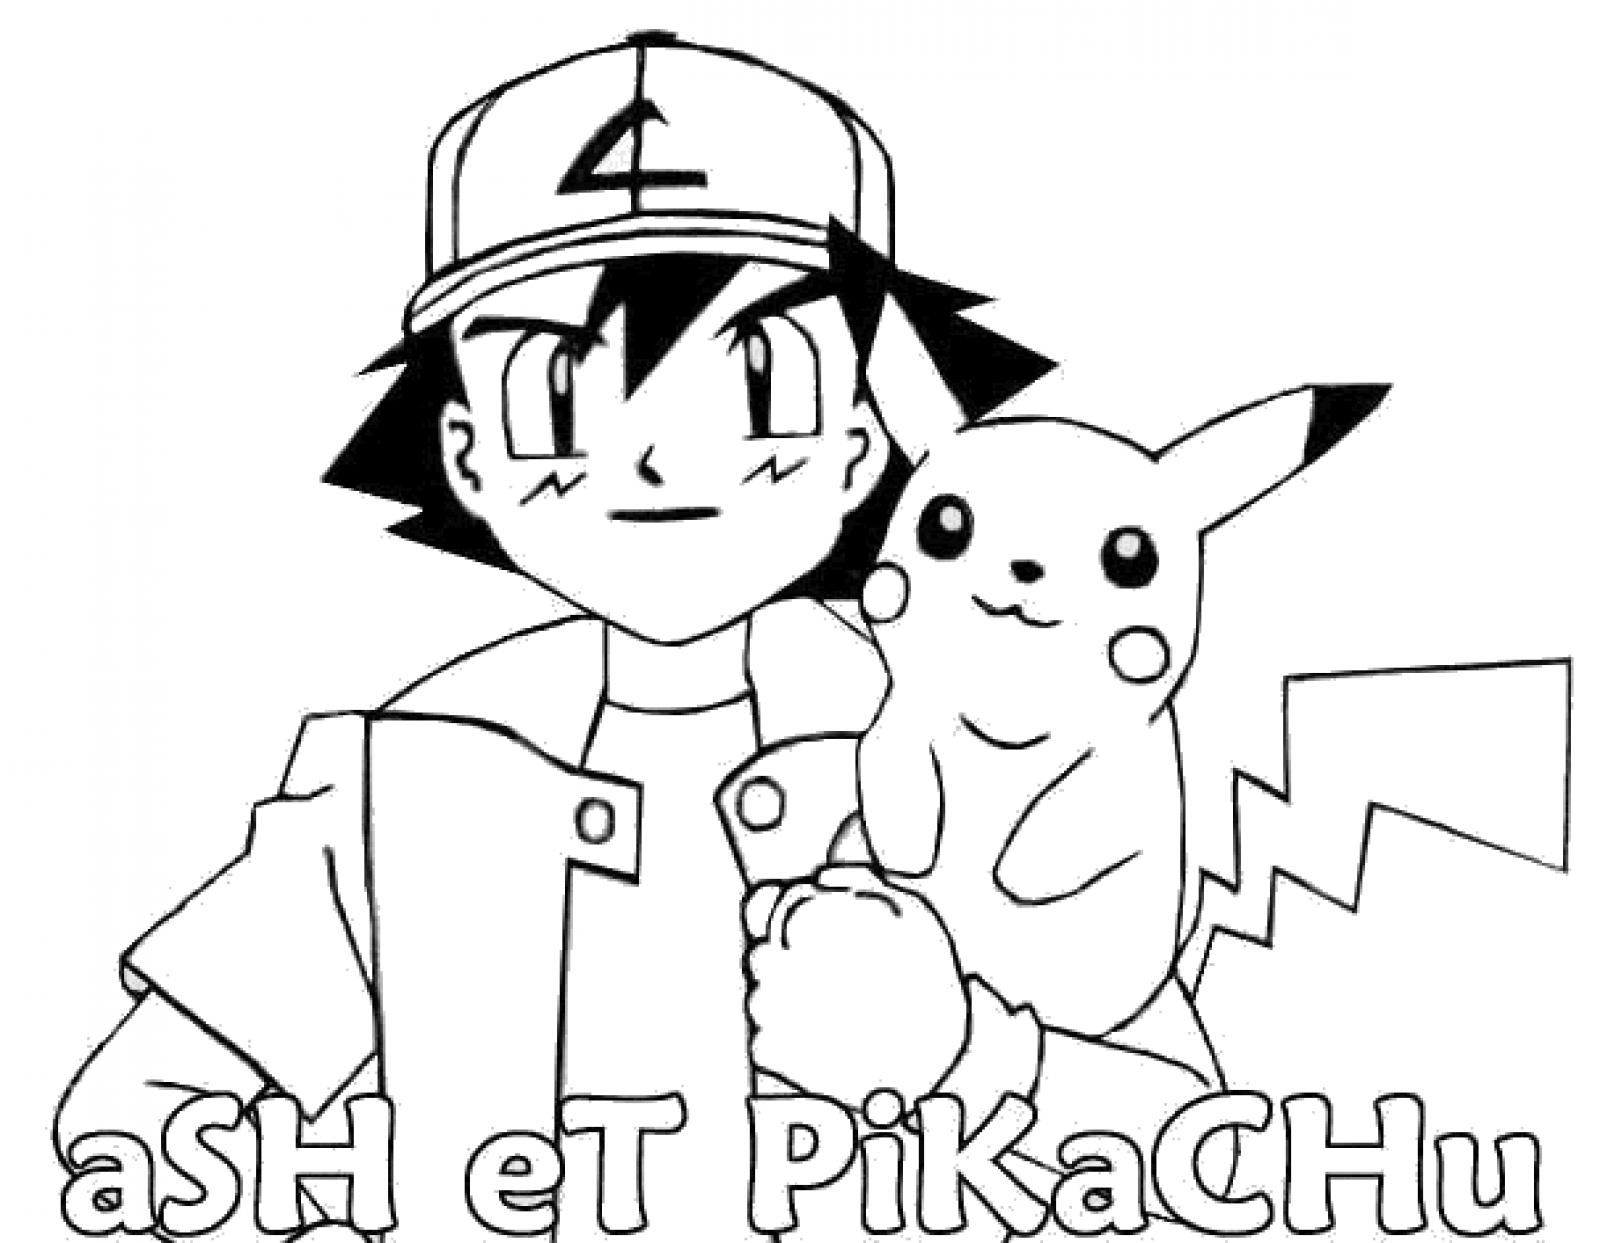 Ash and Pikachu coloring page | Ash and Pikachu | Pinterest | Ash